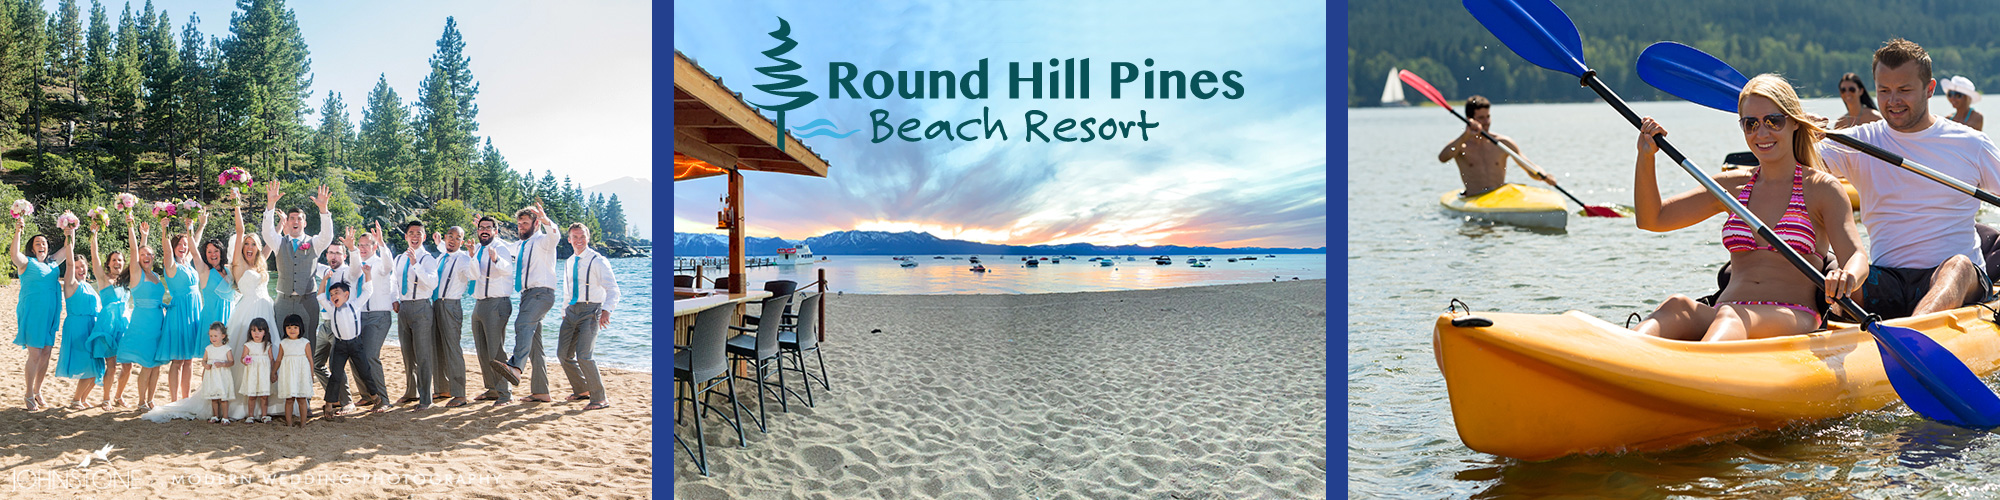 Round Hill Pines Beach Resort